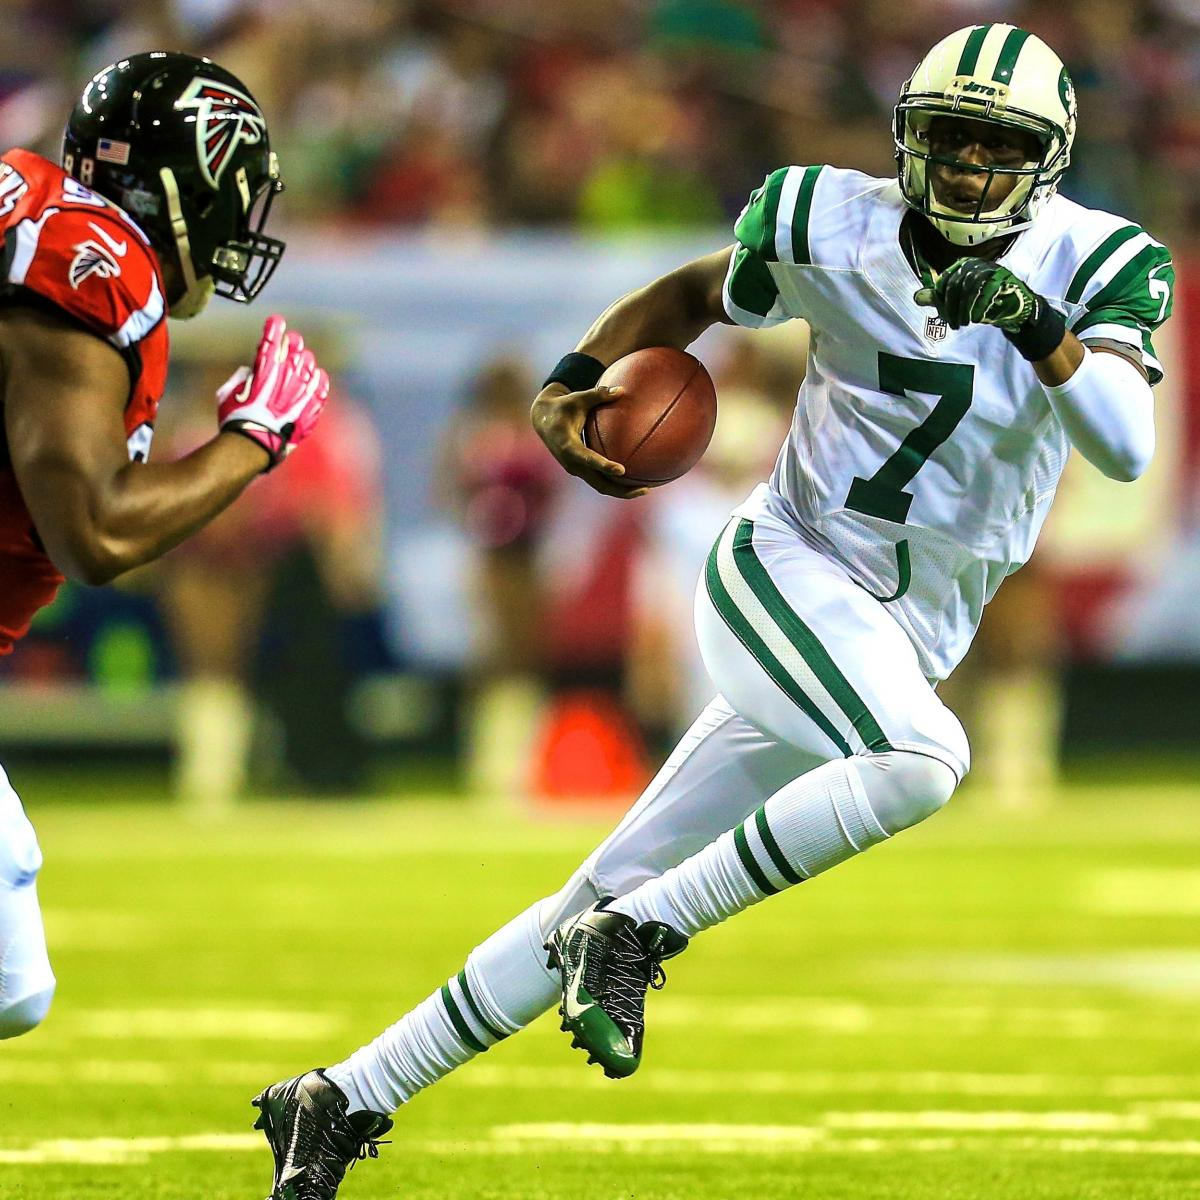 Jets Vs. Falcons: Score, Grades And Analysis